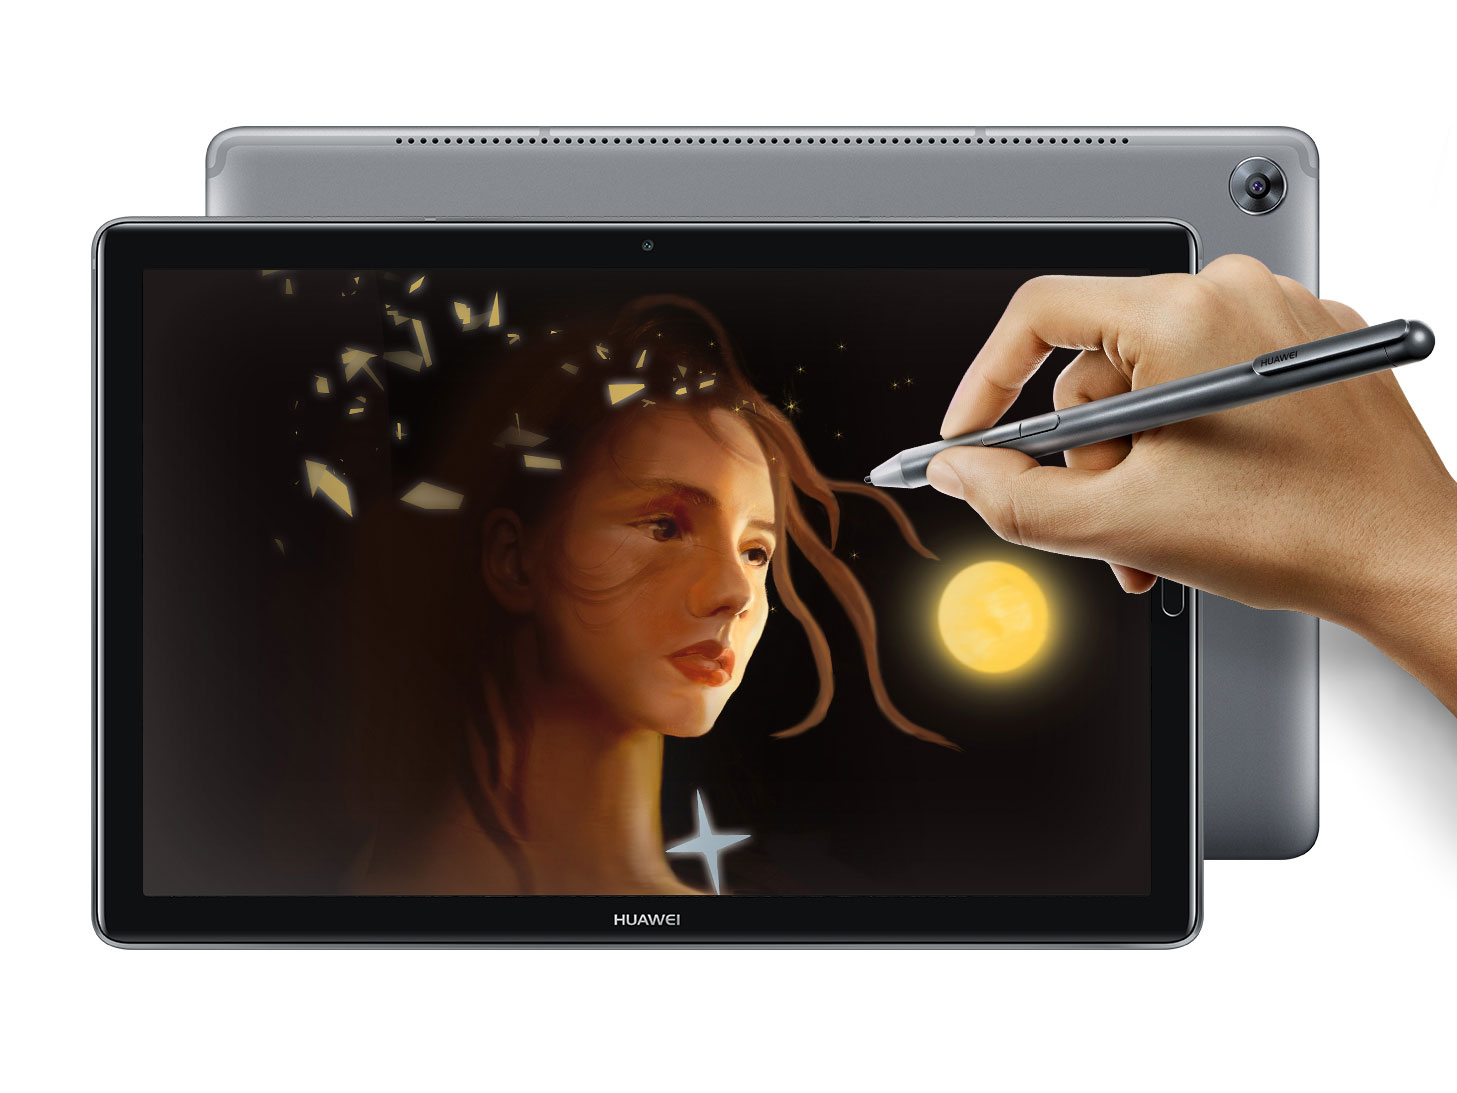 Huawei launches MediaPad M5 Pro tablet with M-Pen: Digital Photography  Review